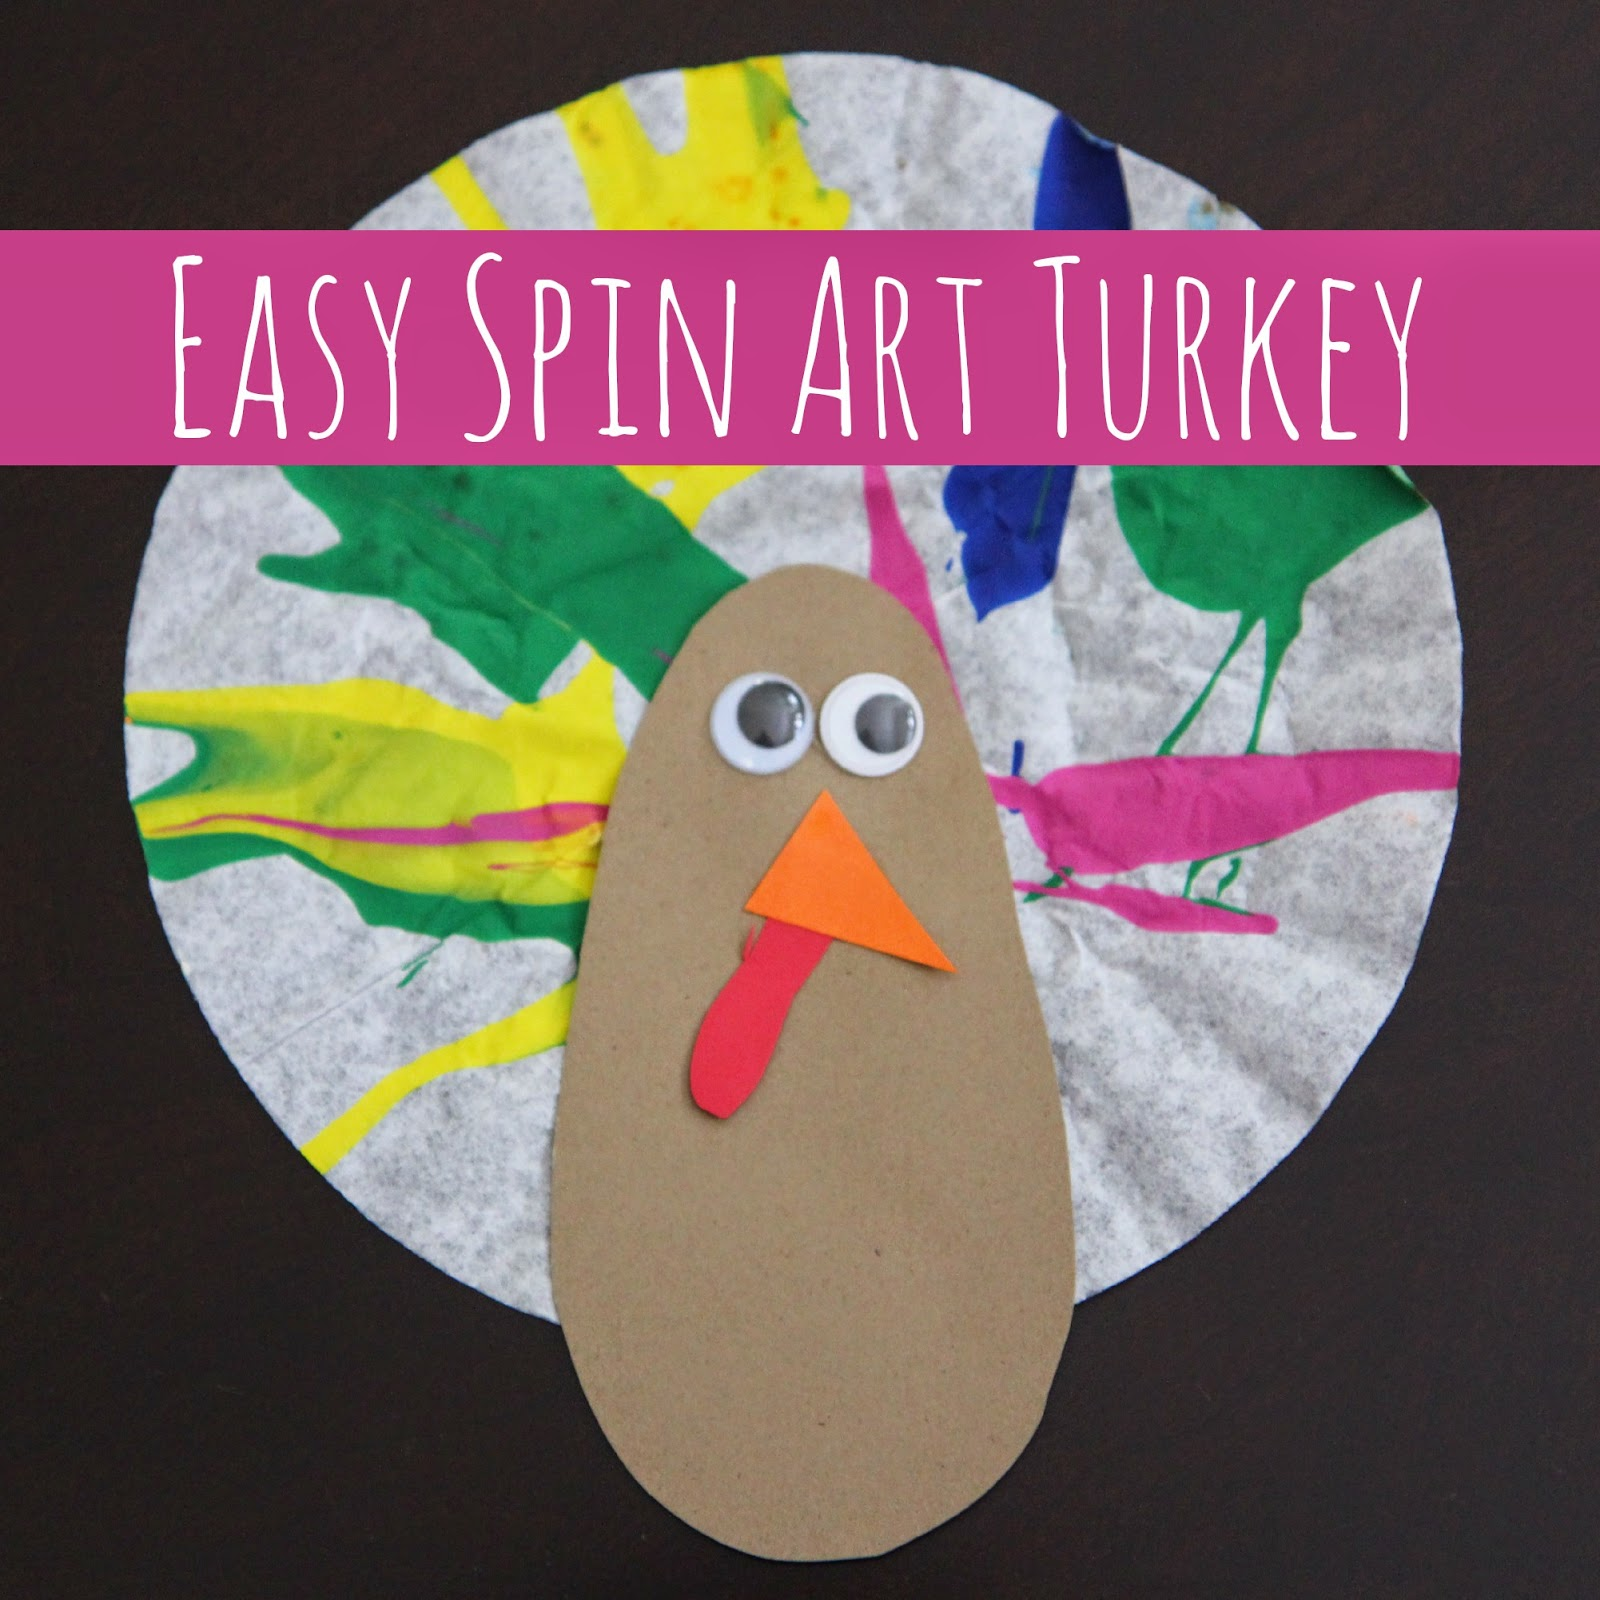 In This Post I Am Sharing Our Easy Spin Art Turkey Craft And You Can Go Here To Check Out Toddler With Coffee Filters That We Shared